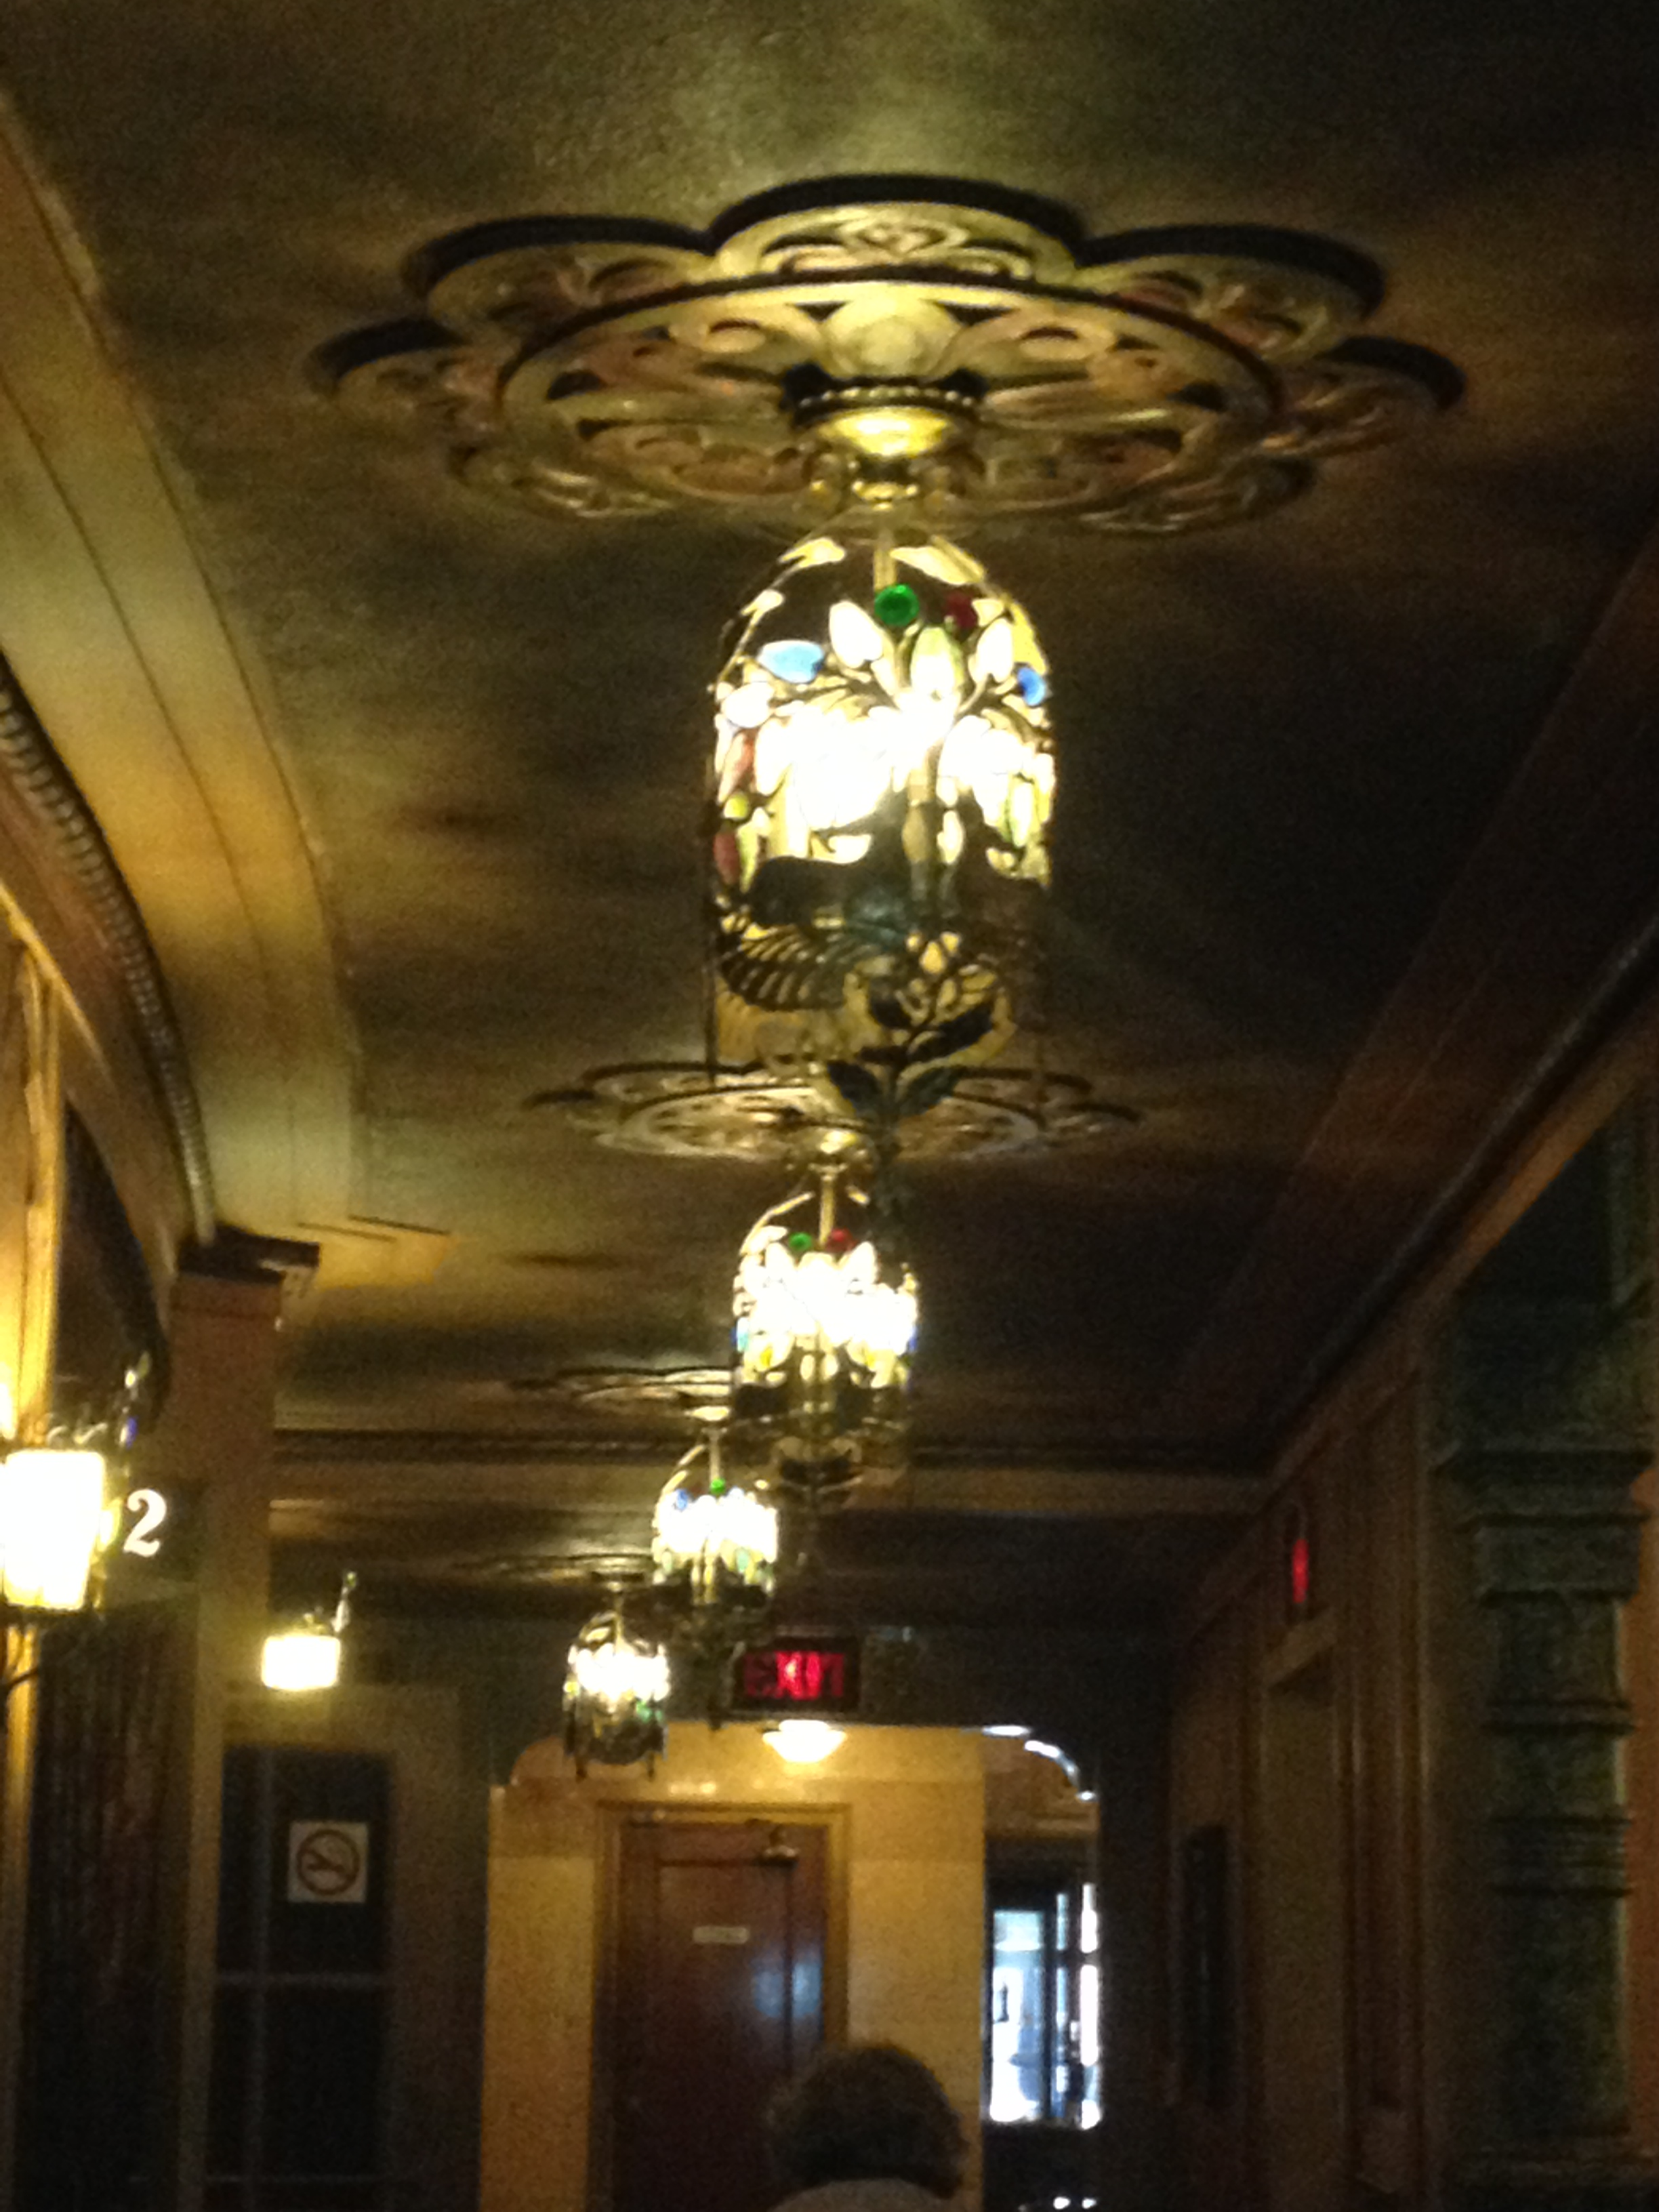 Image of the antique lighting at the Alabama Theatre